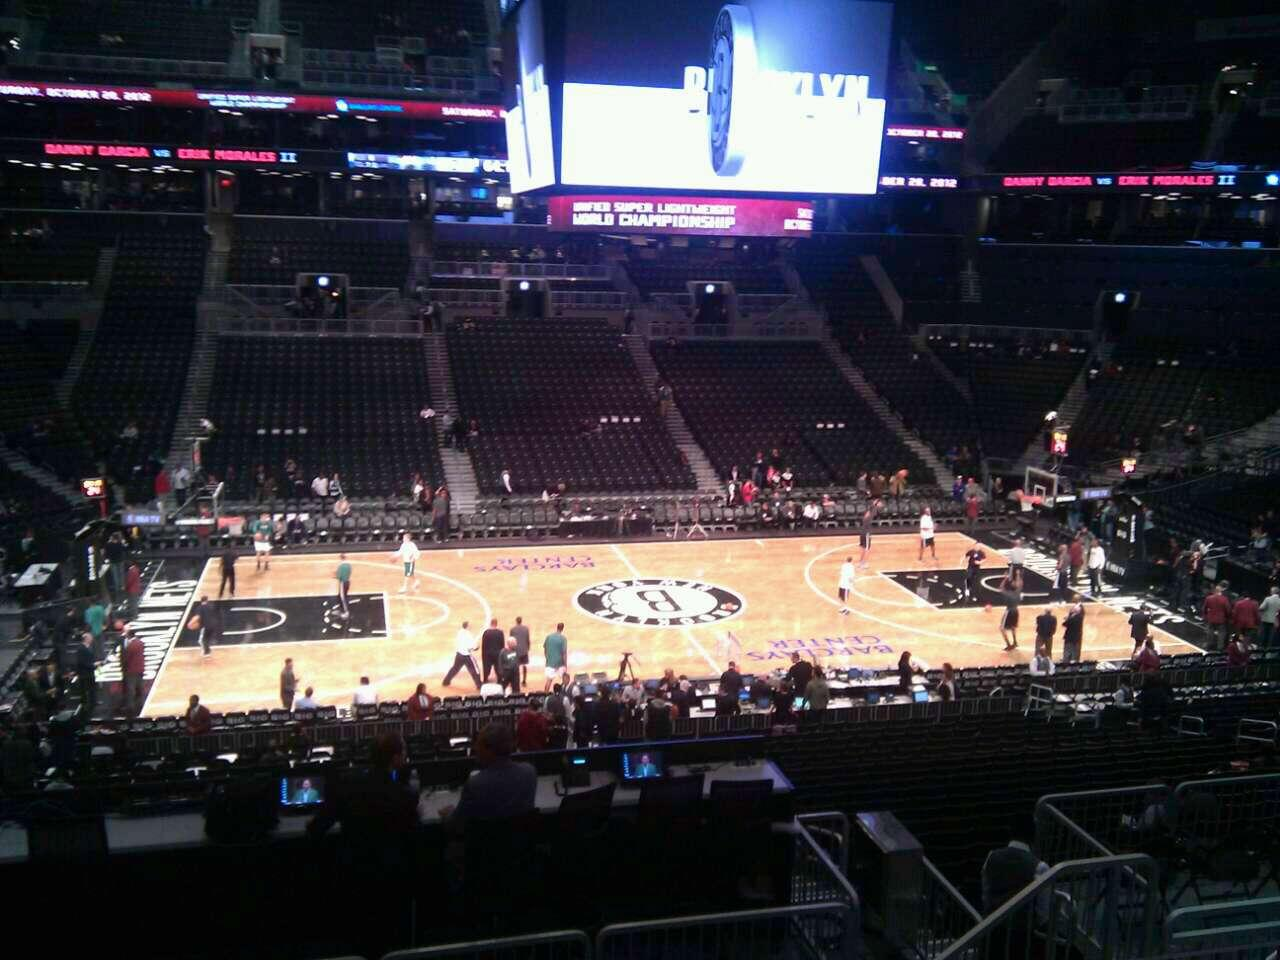 Barclays Center Section 110 Row 9 Seat 6